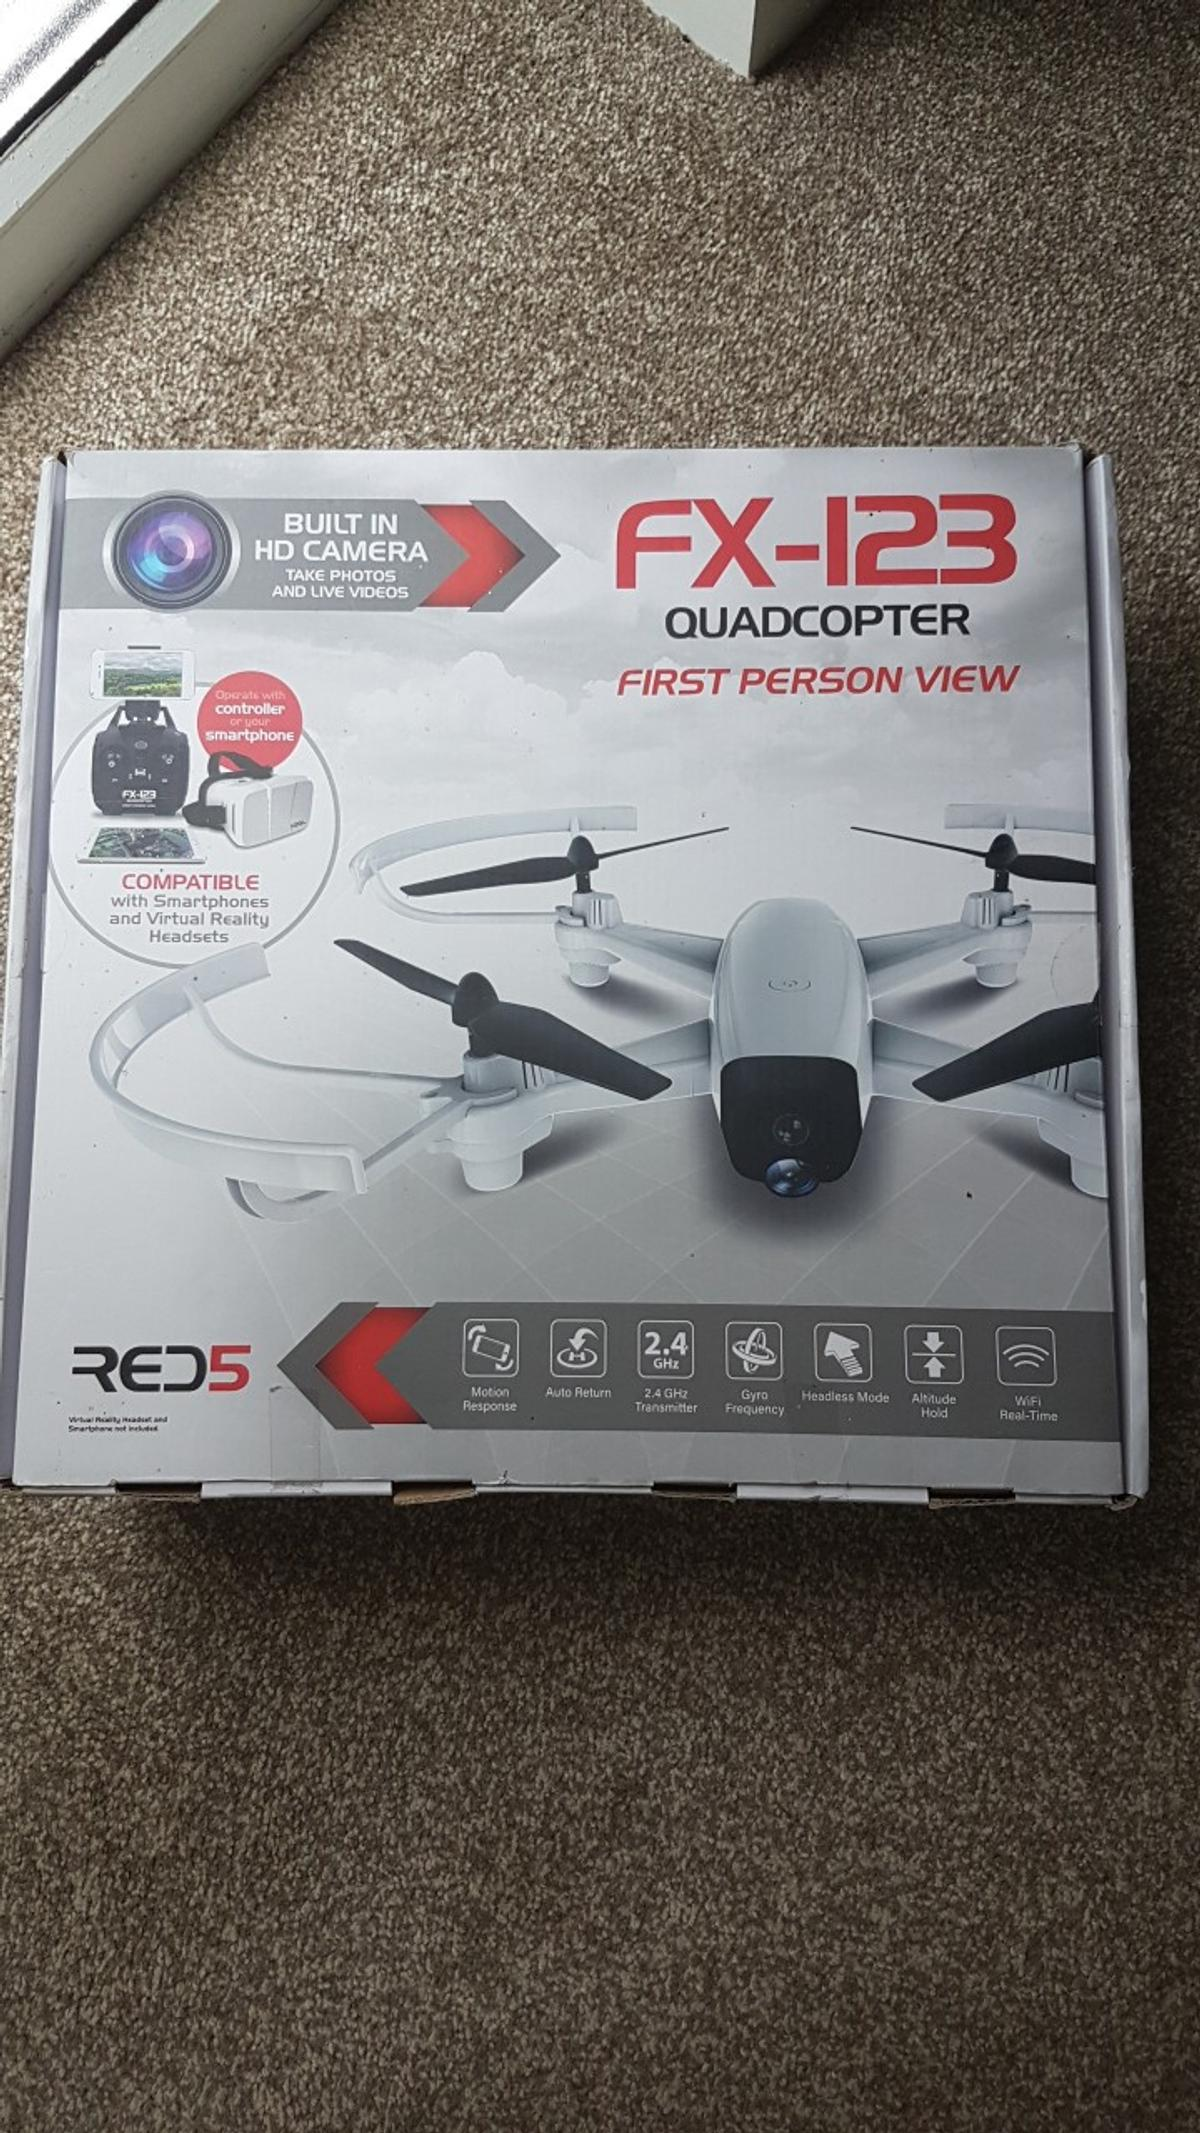 *Awesome 2.4GHz FX-123 Quadcopter in White *Adjstable HD camera *Motion response steering *Headless flying mode *Auto return home button *Three speed modes *Altitude lock *Built-in WiFi connectivity for the associated app *Connects to your smartphone (either iOS or Android) for streaming HD footage *Built in LED lights for night time flying *Measures approx. 37cm x 37cm x 7cm  rrp £95  Is in its original box Collection only